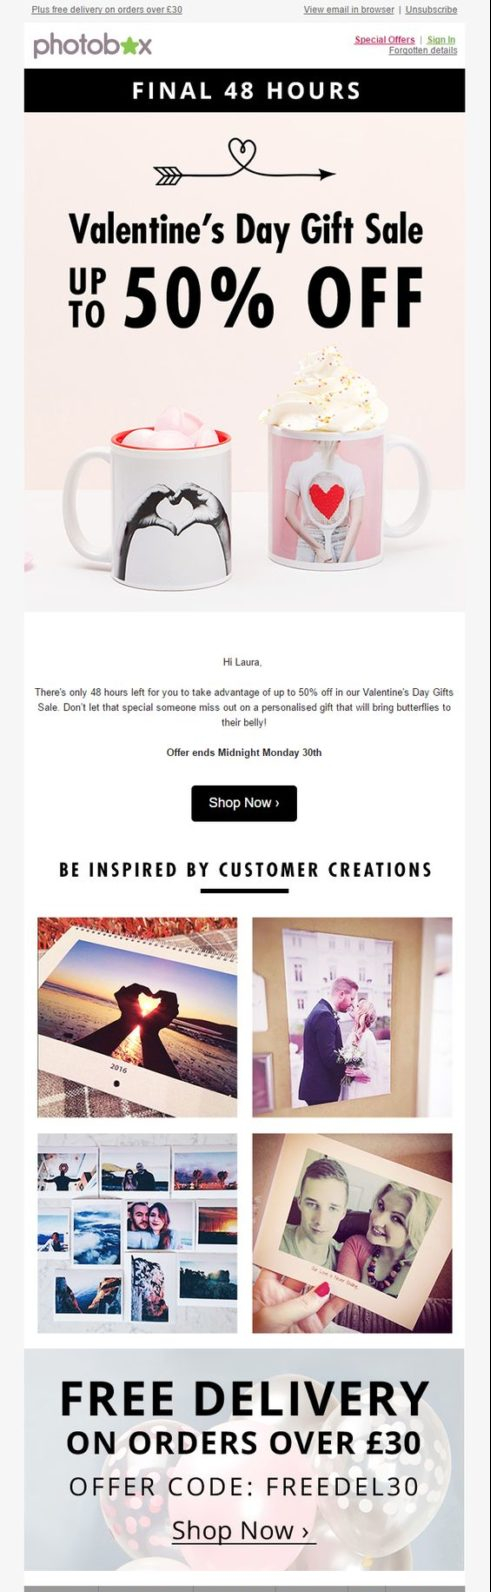 Photobox's valentine's day email campaign